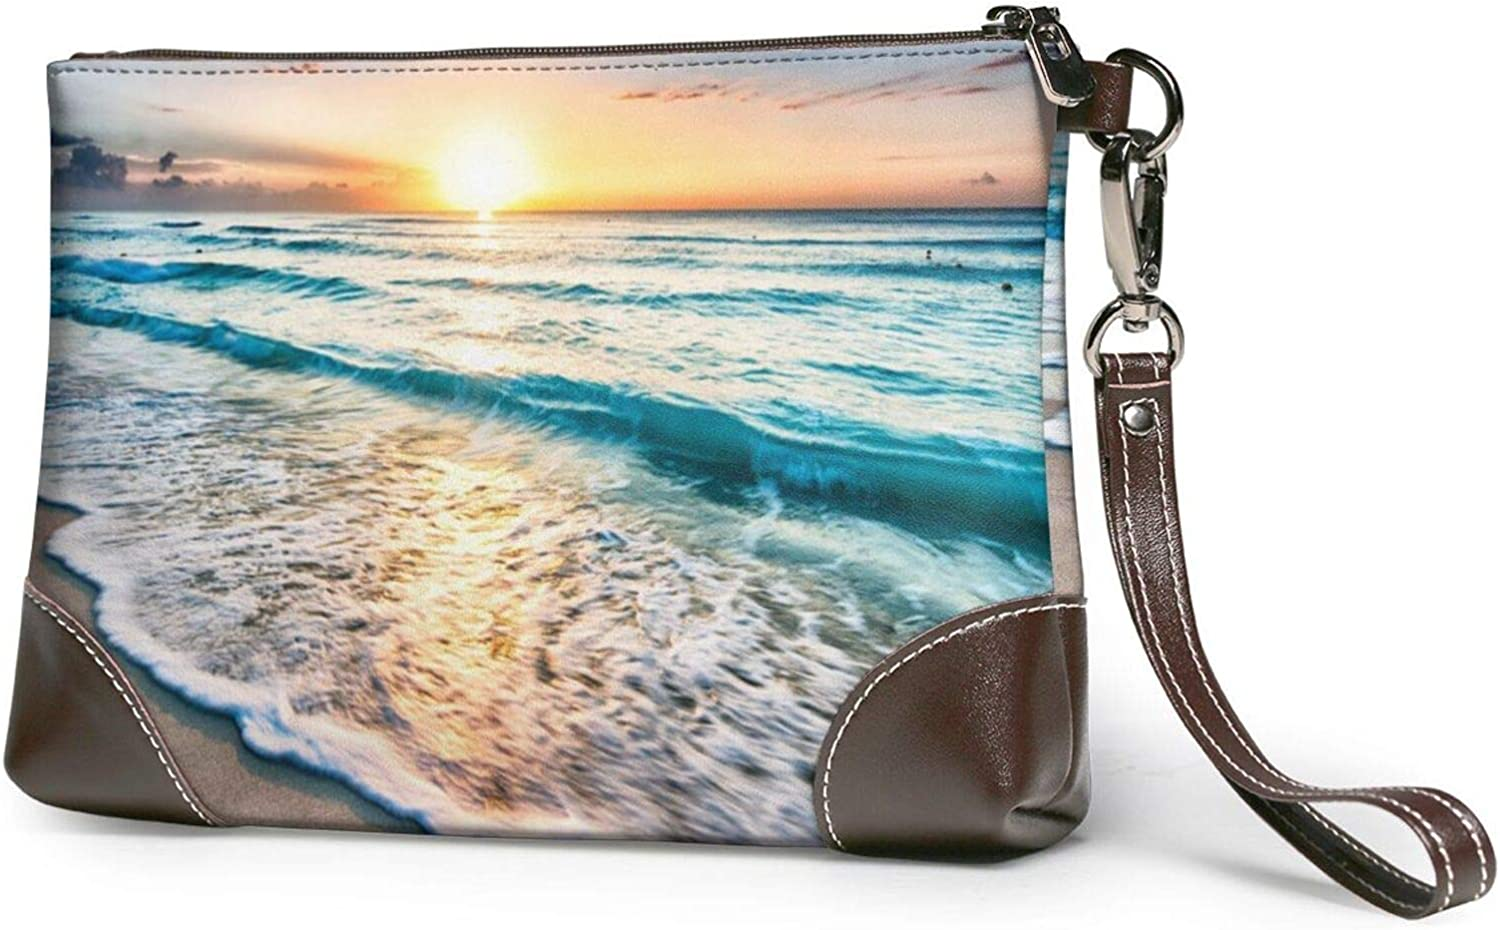 Super Special SALE held Beach Sunset Ocean Waves Clutch Leather Charlotte Mall Wristlet Purses W